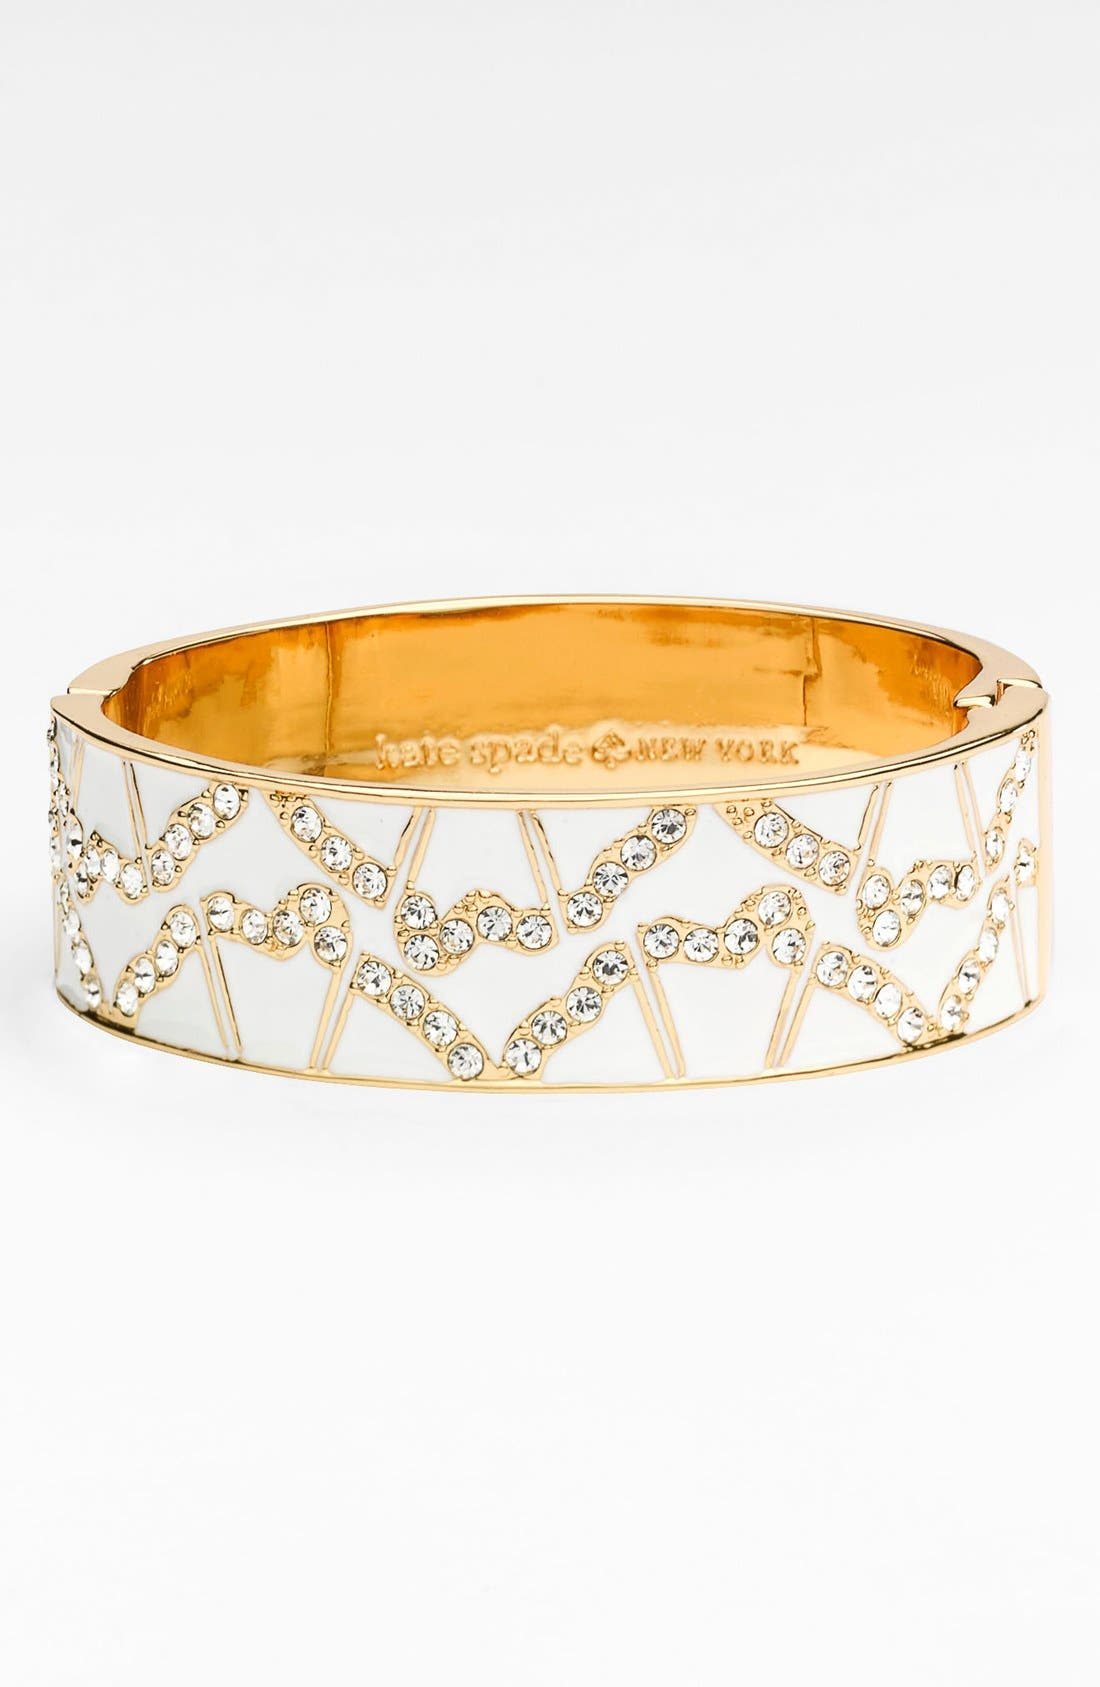 Main Image - kate spade new york 'garden grove' hinged bangle